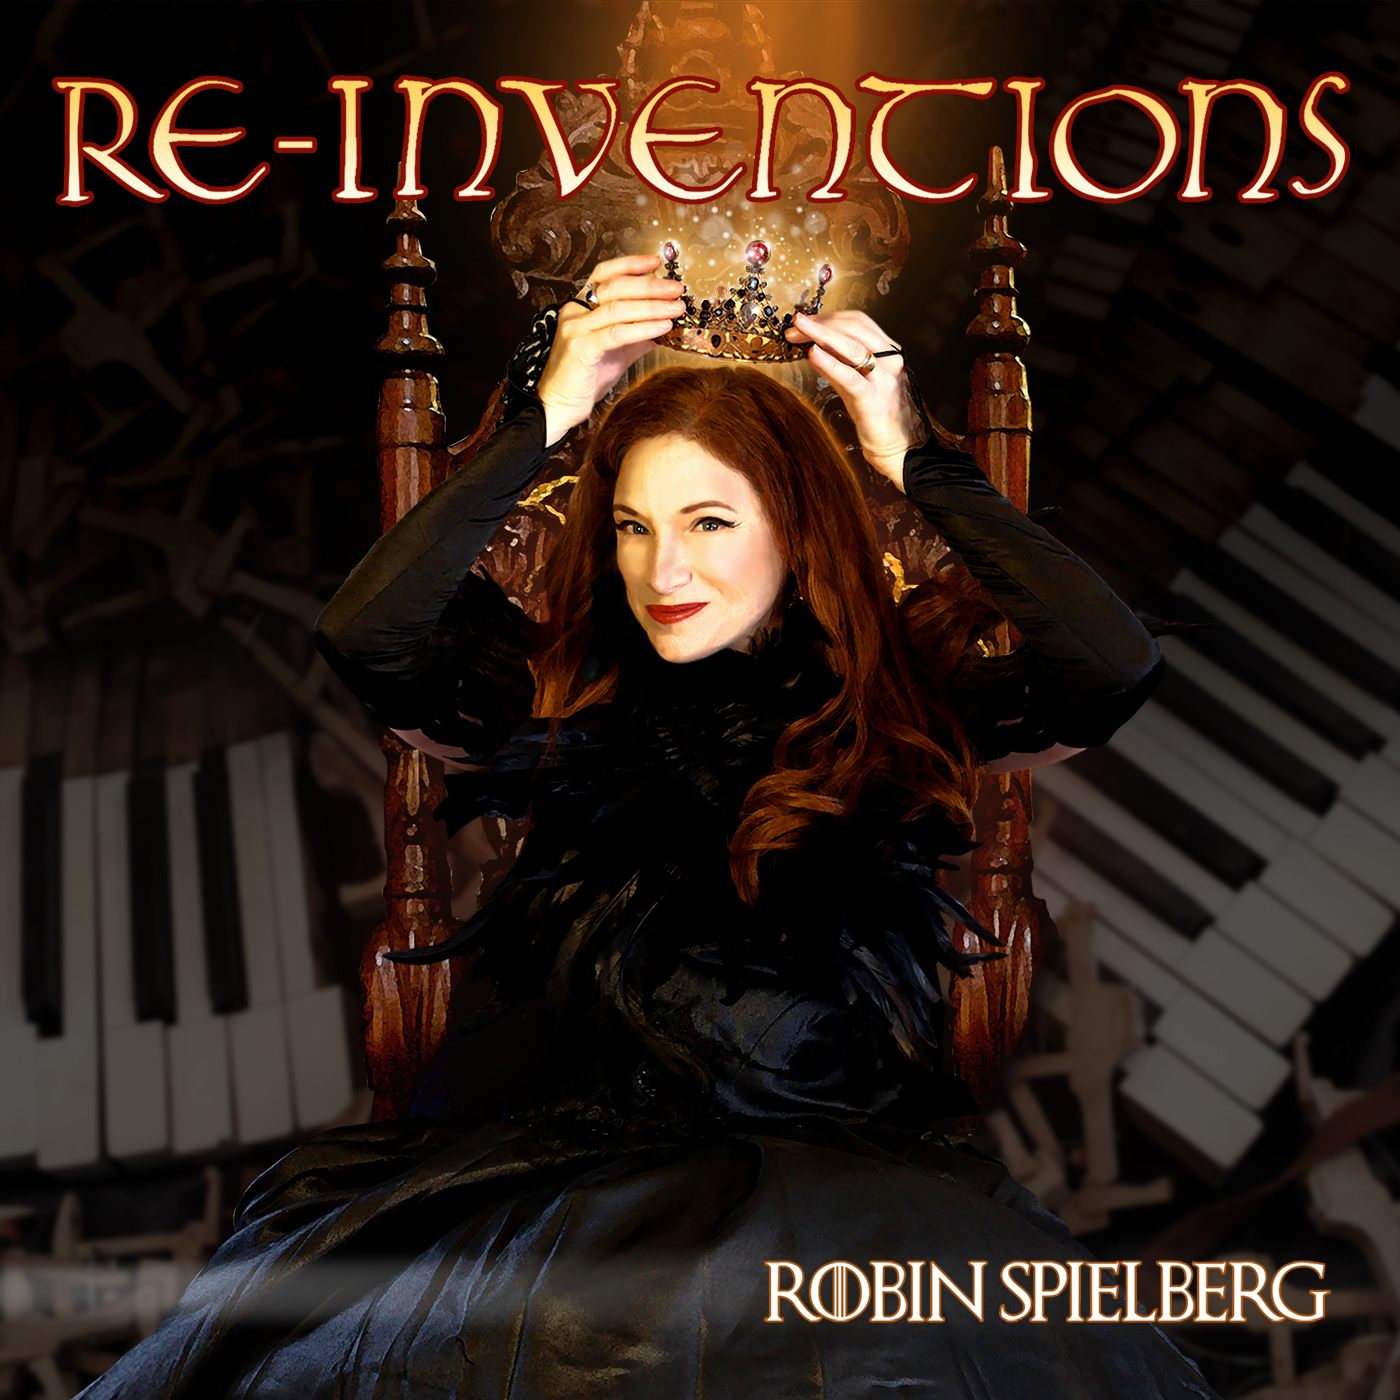 Robin Spielberg - Re-Inventions